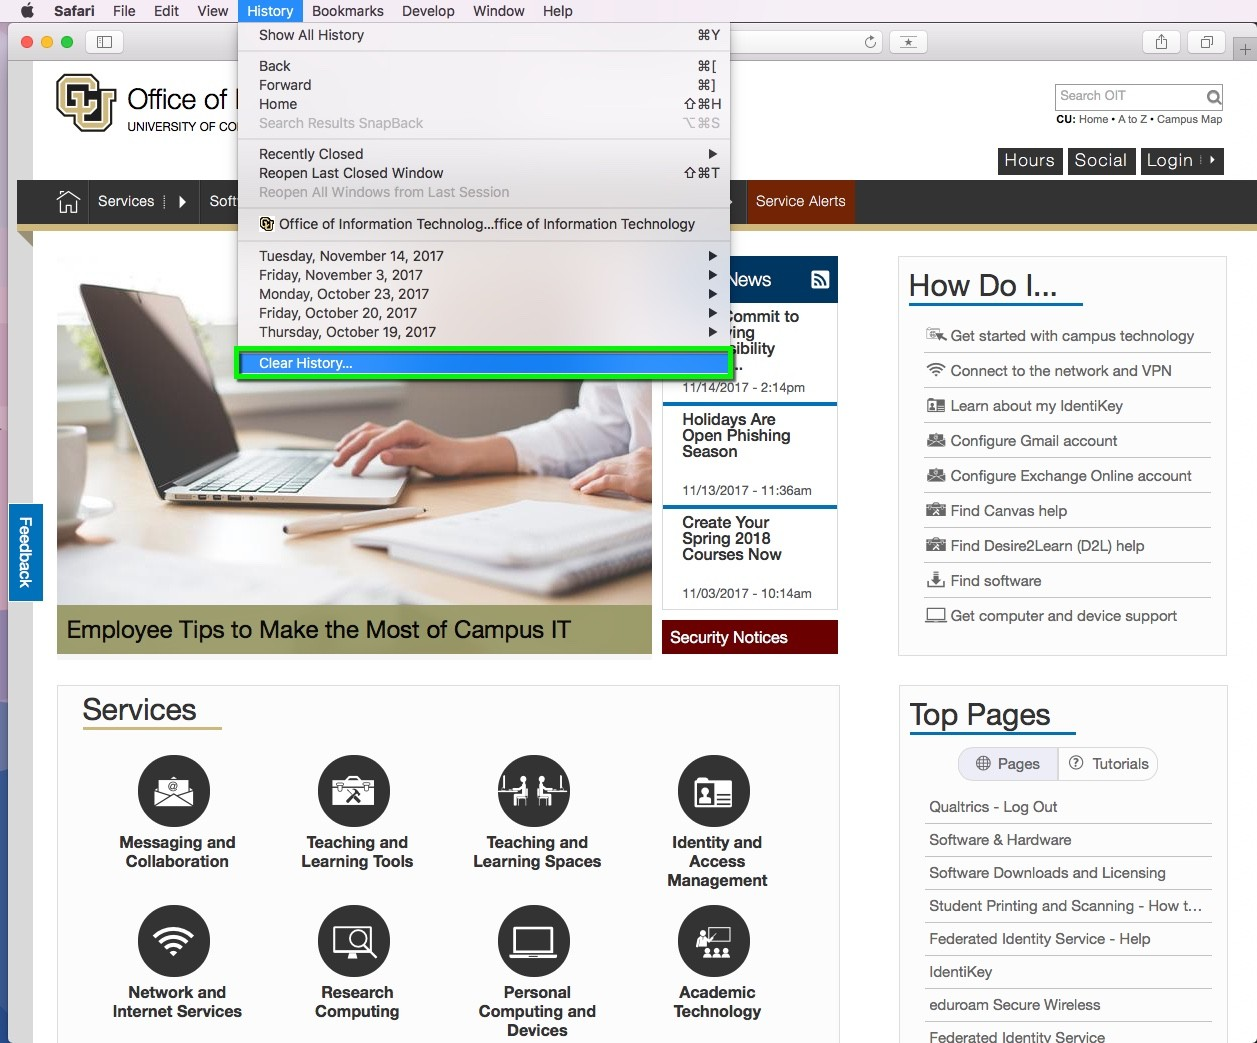 Clear the Web Browser Cache - Safari | Office of Information